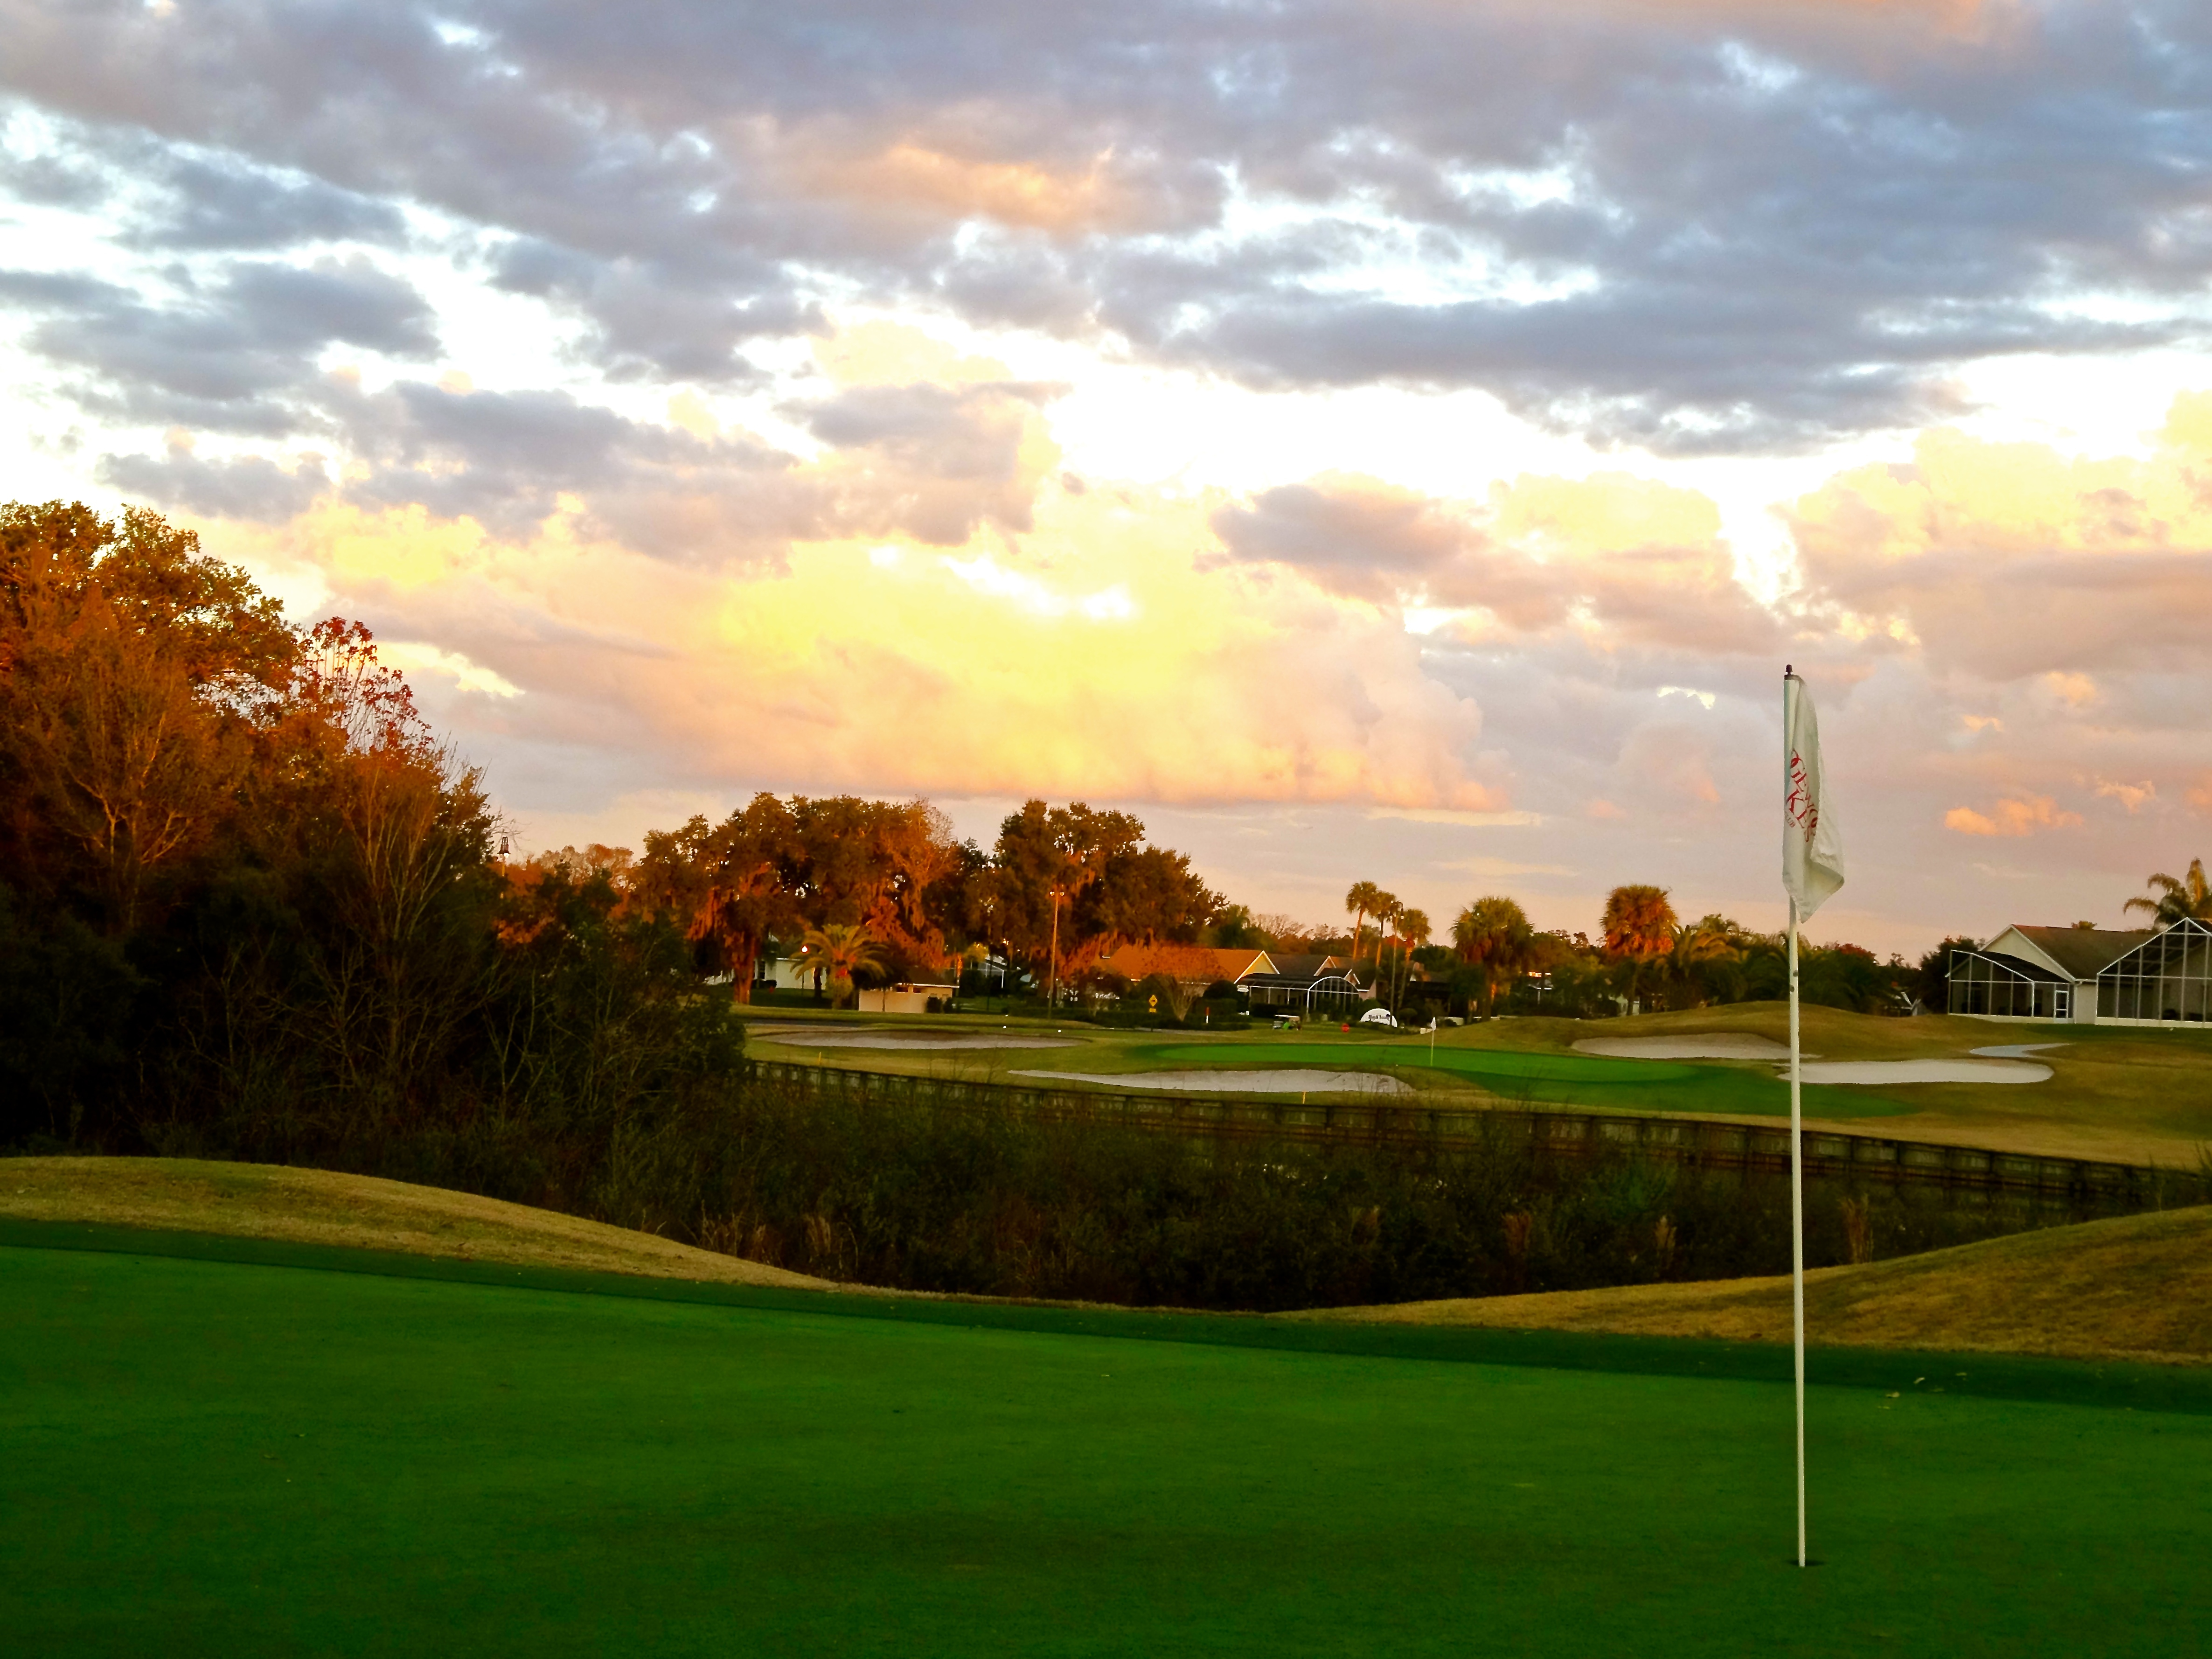 Overview of golf course named Ridgewood Lakes Golf Club